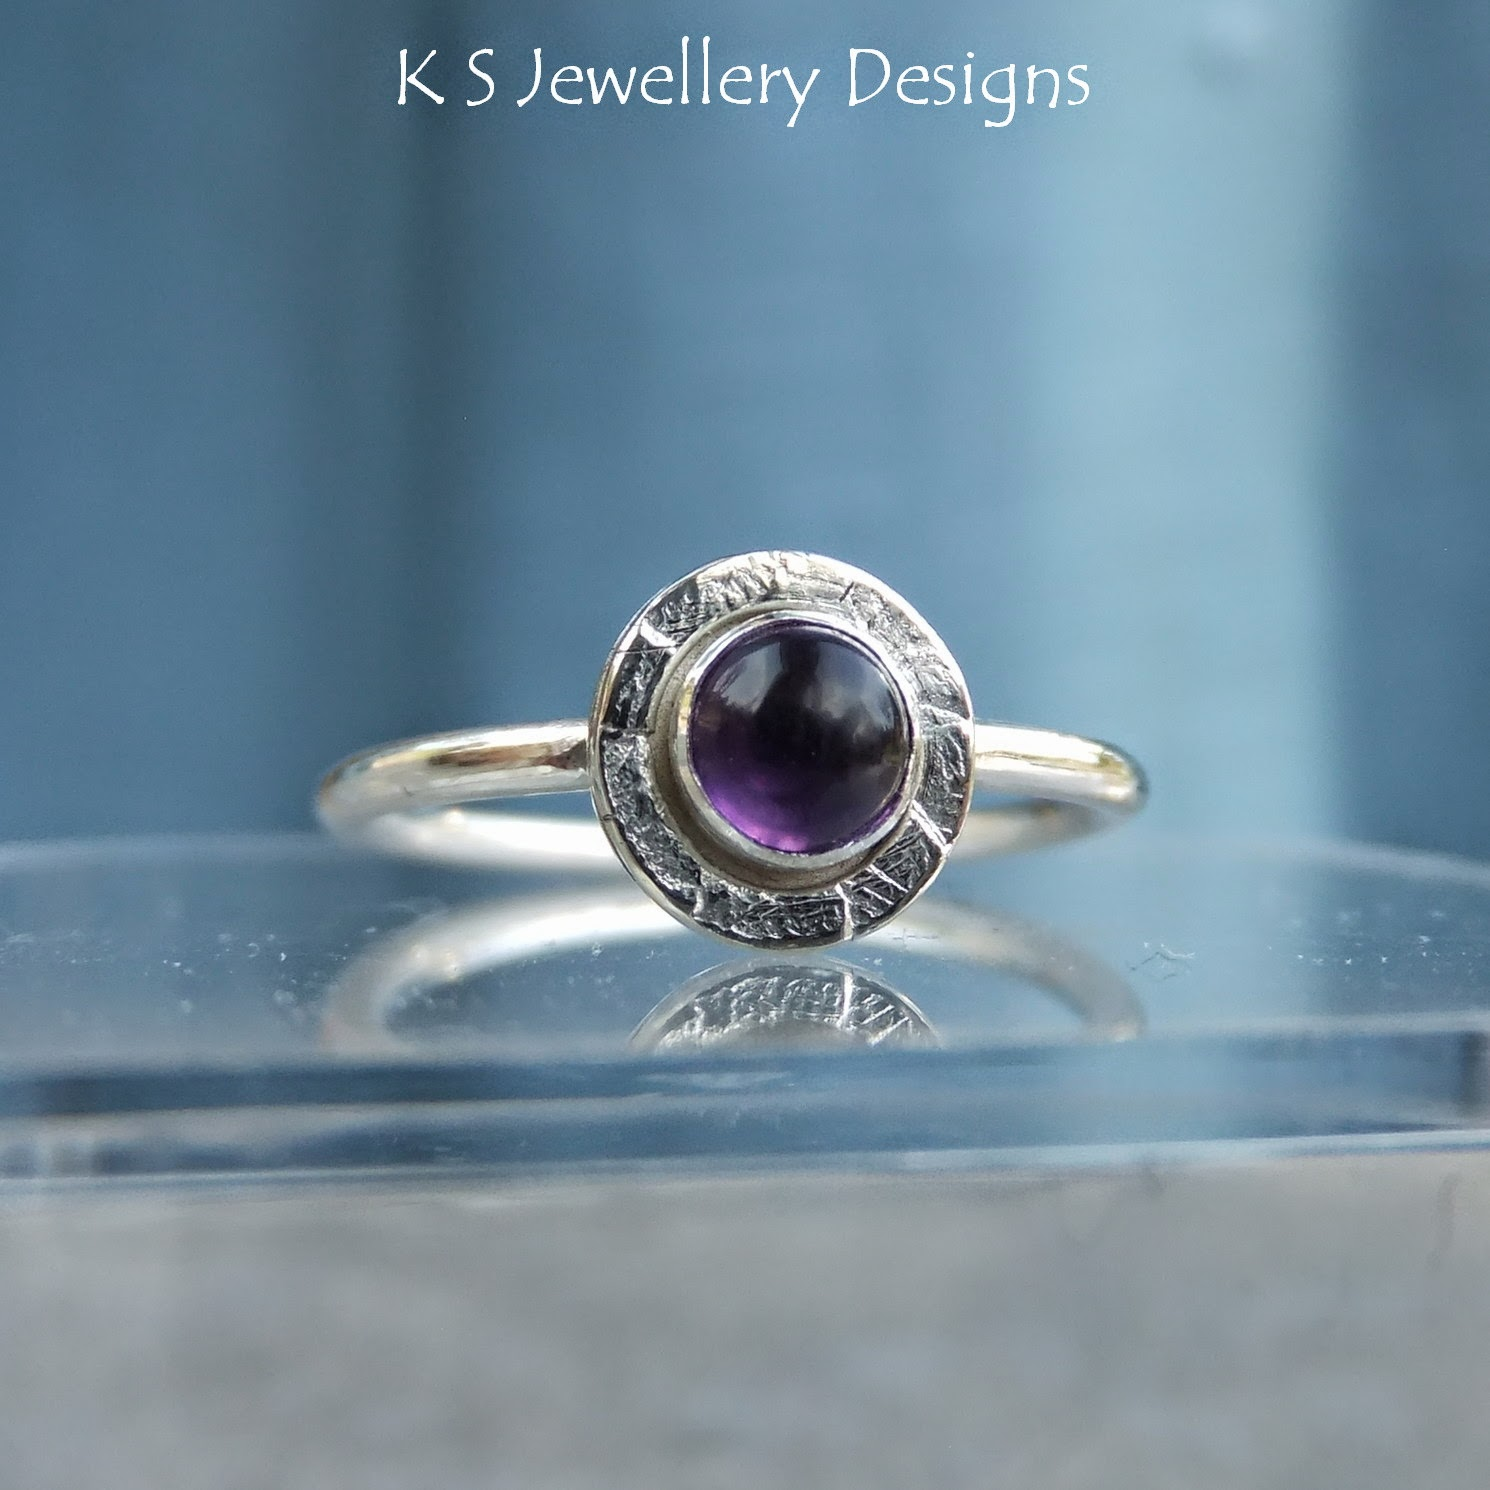 K S Jewellery Designs: Rings, rings and more rings...